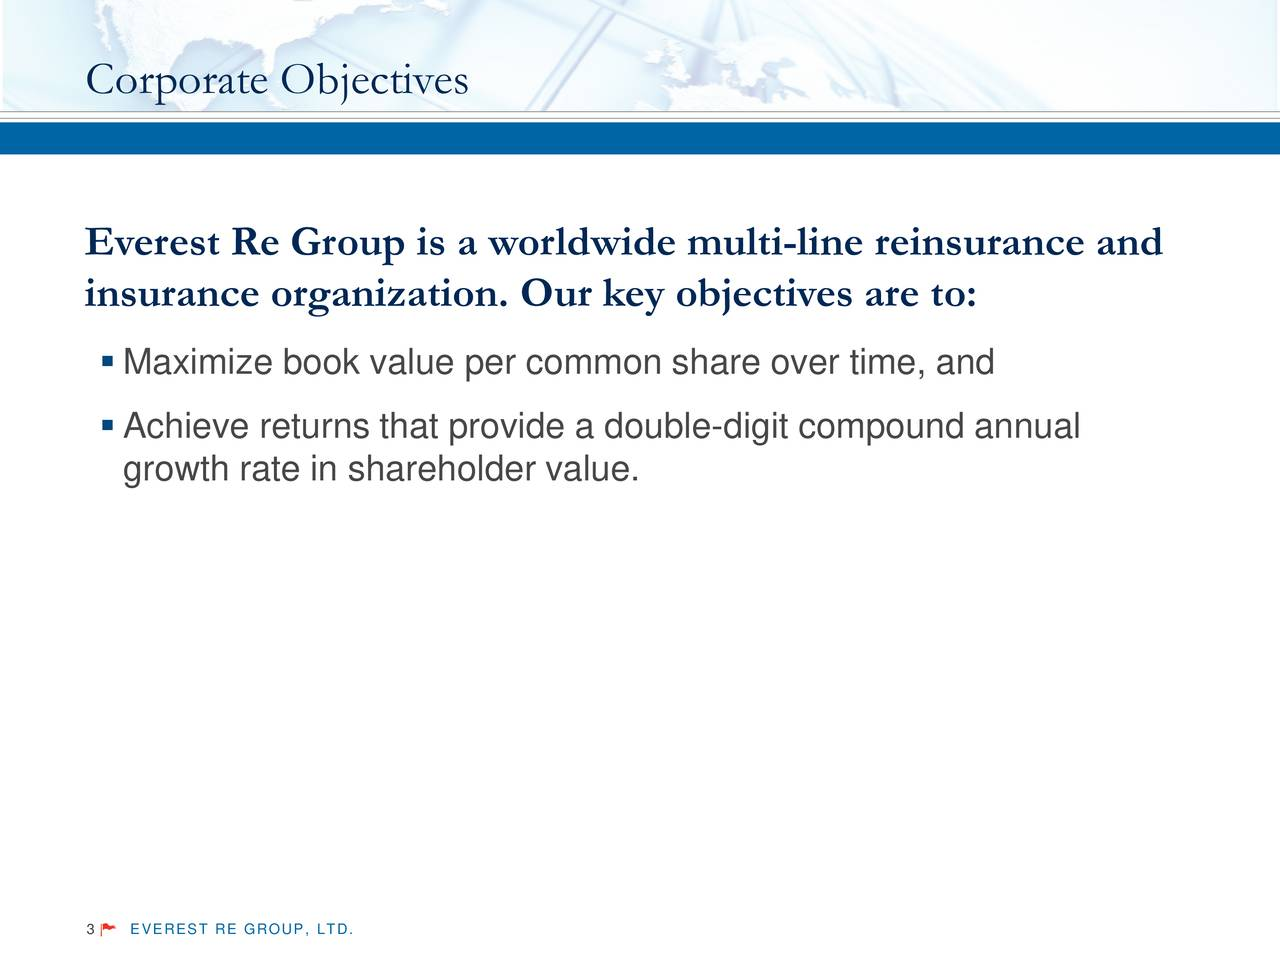 Everest Re Group is a worldwide multi-line reinsurance and insurance organization. Our key objectives are to: Maximize book value per common share over time, and Achieve returns that provide a double-digit compound annual growth rate in shareholder value. 3 EVEREST RE GROUP, LTD.